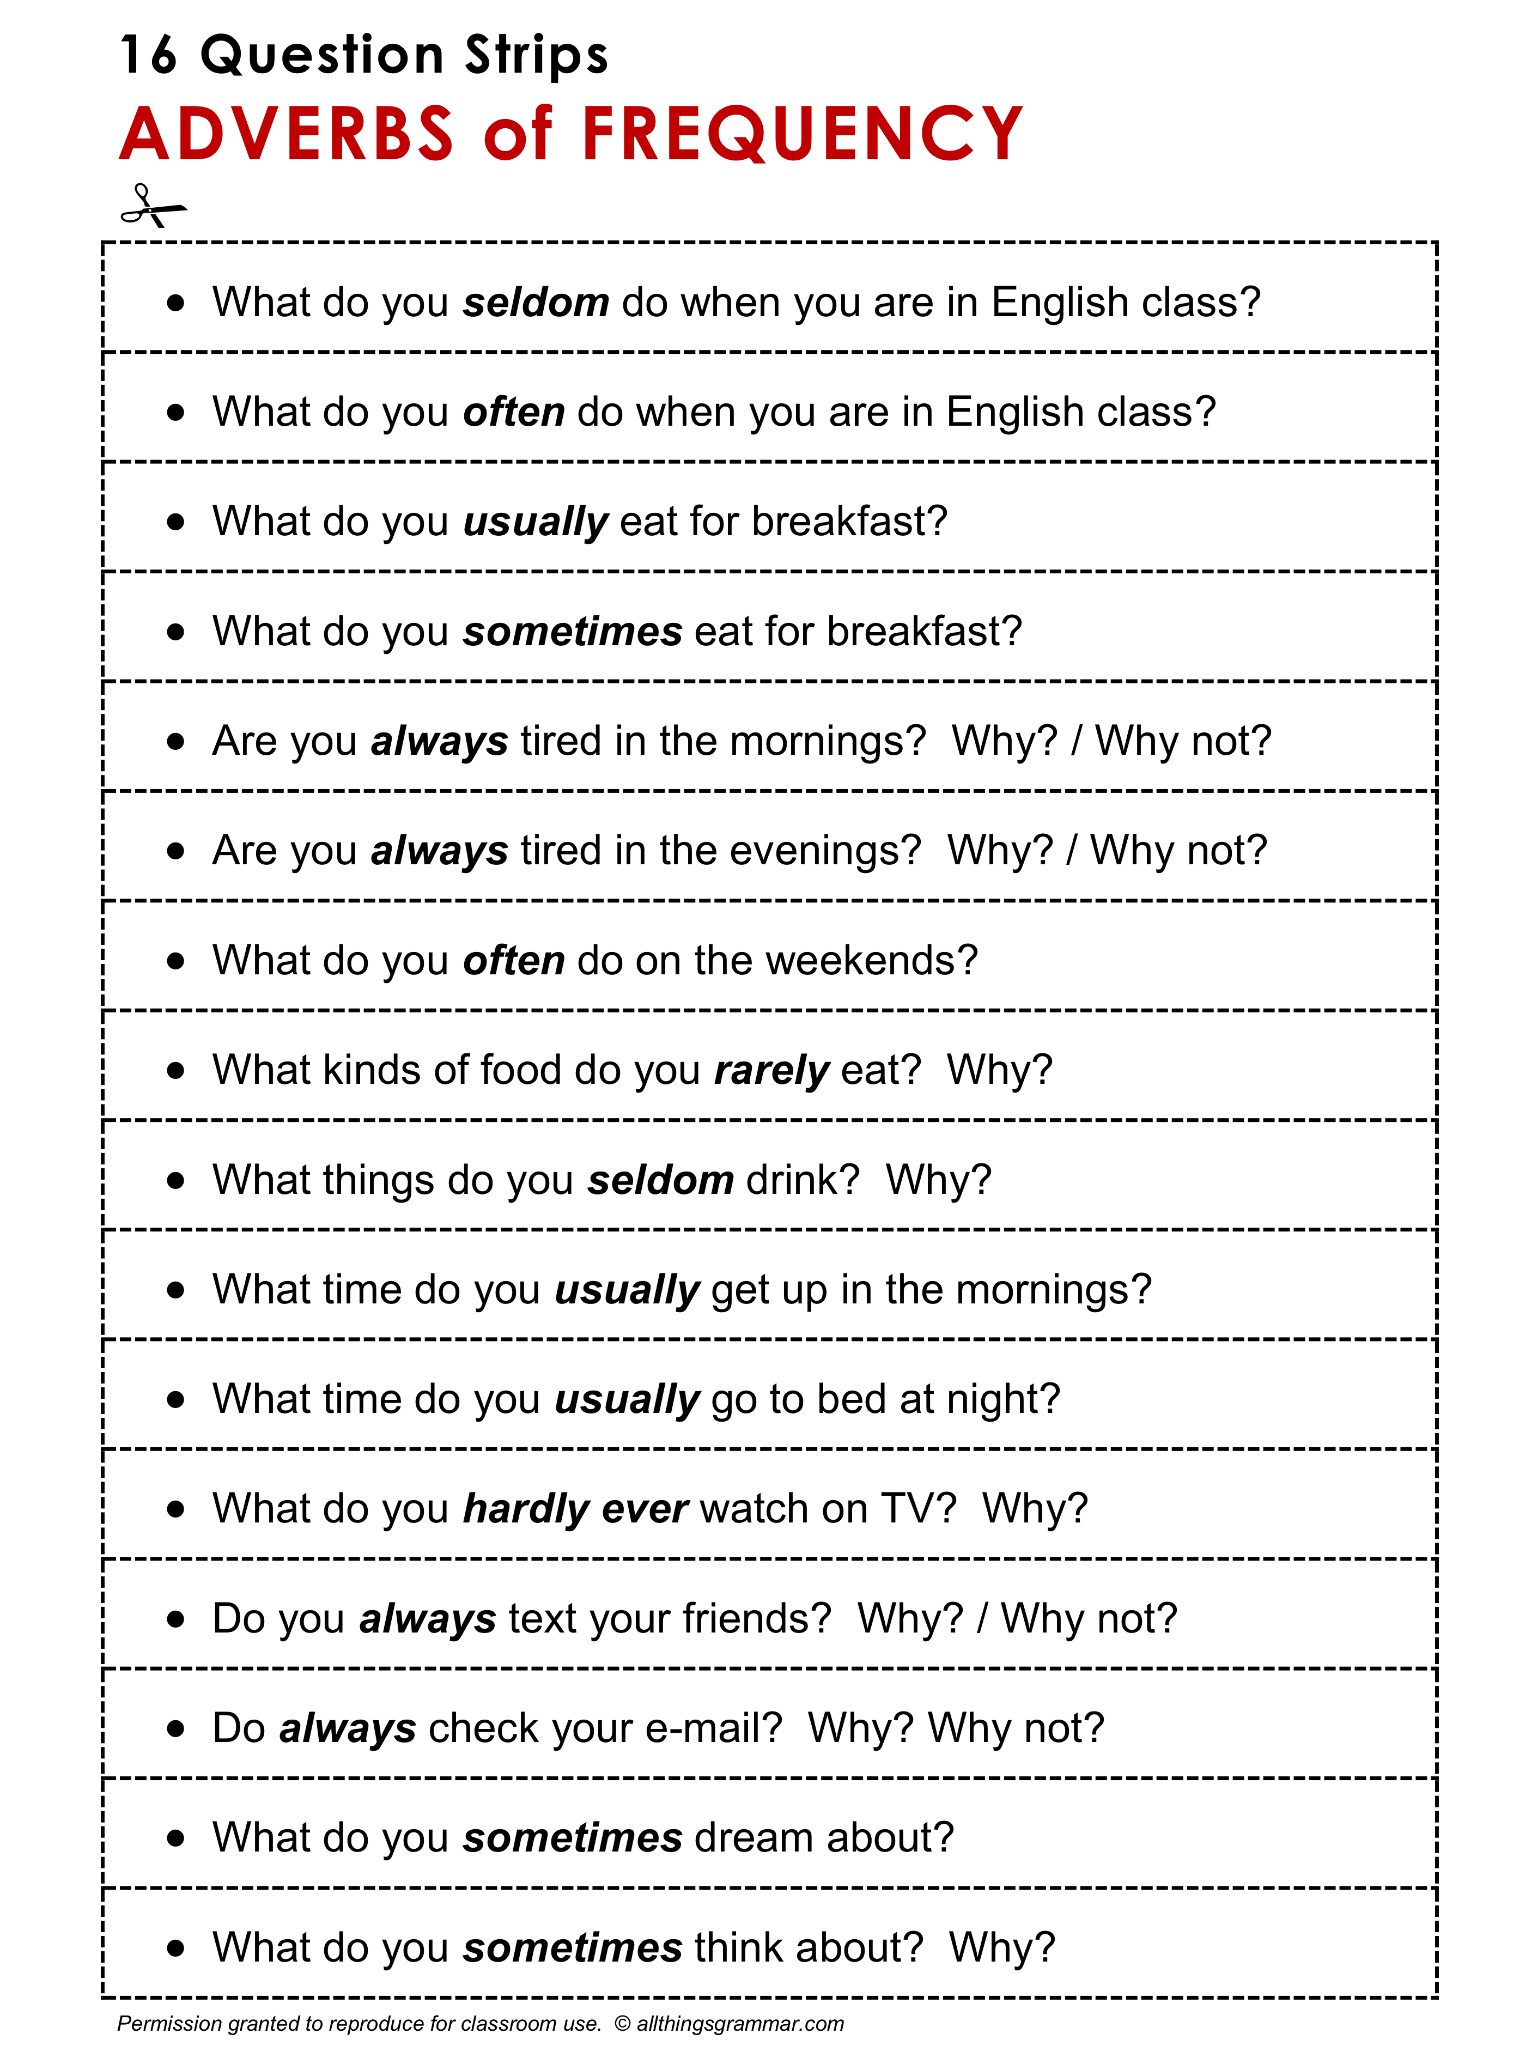 Worksheet With Adverbs Of Frequency